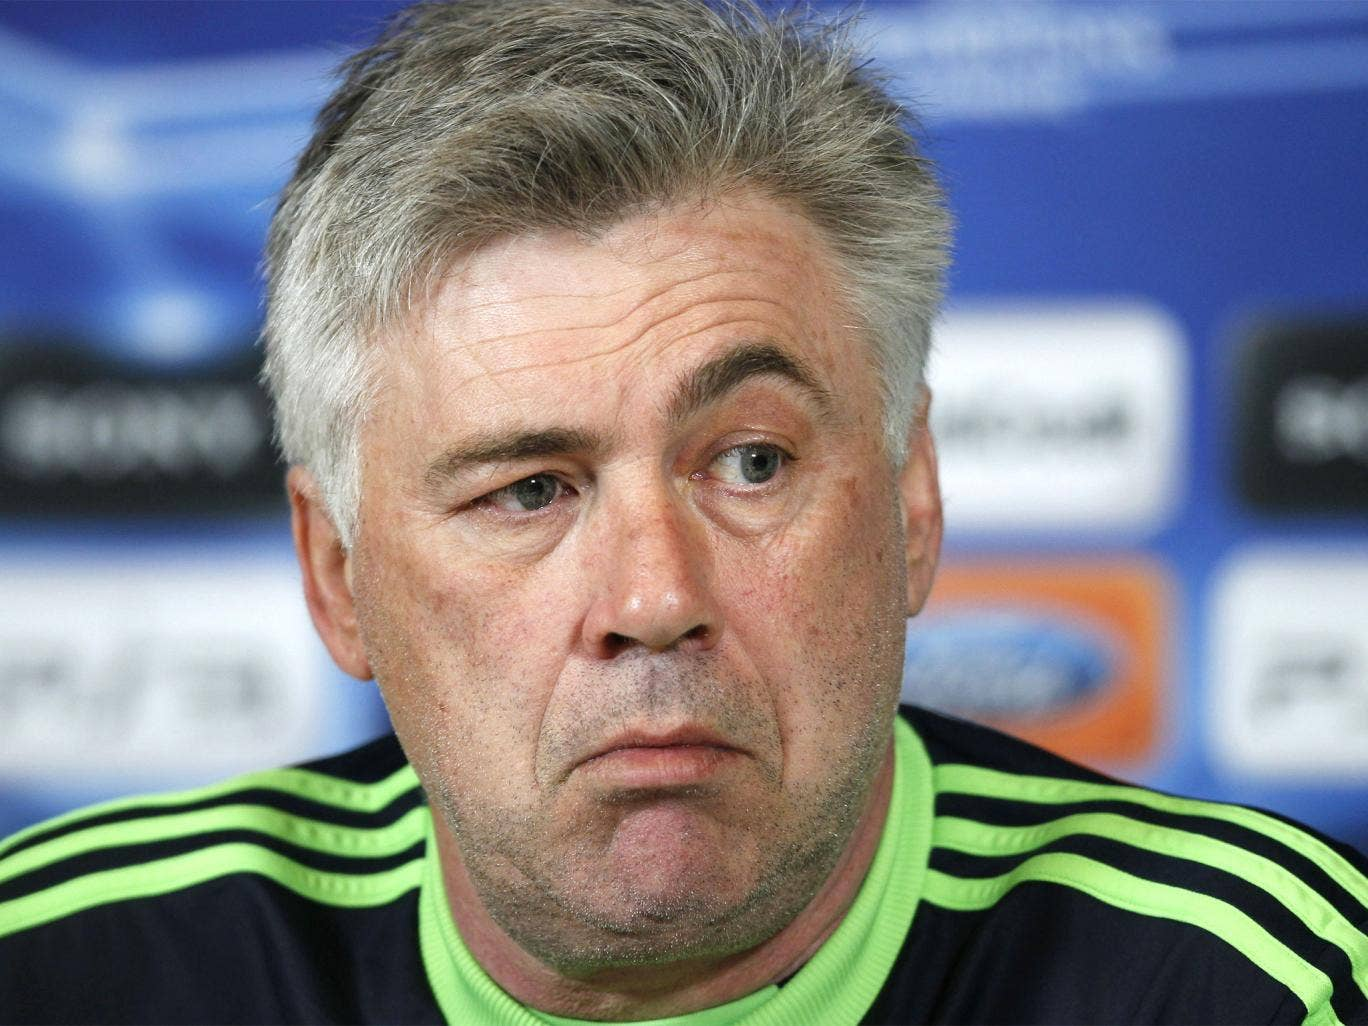 Carlos Ancelotti lasted nearly two years in the hot seat